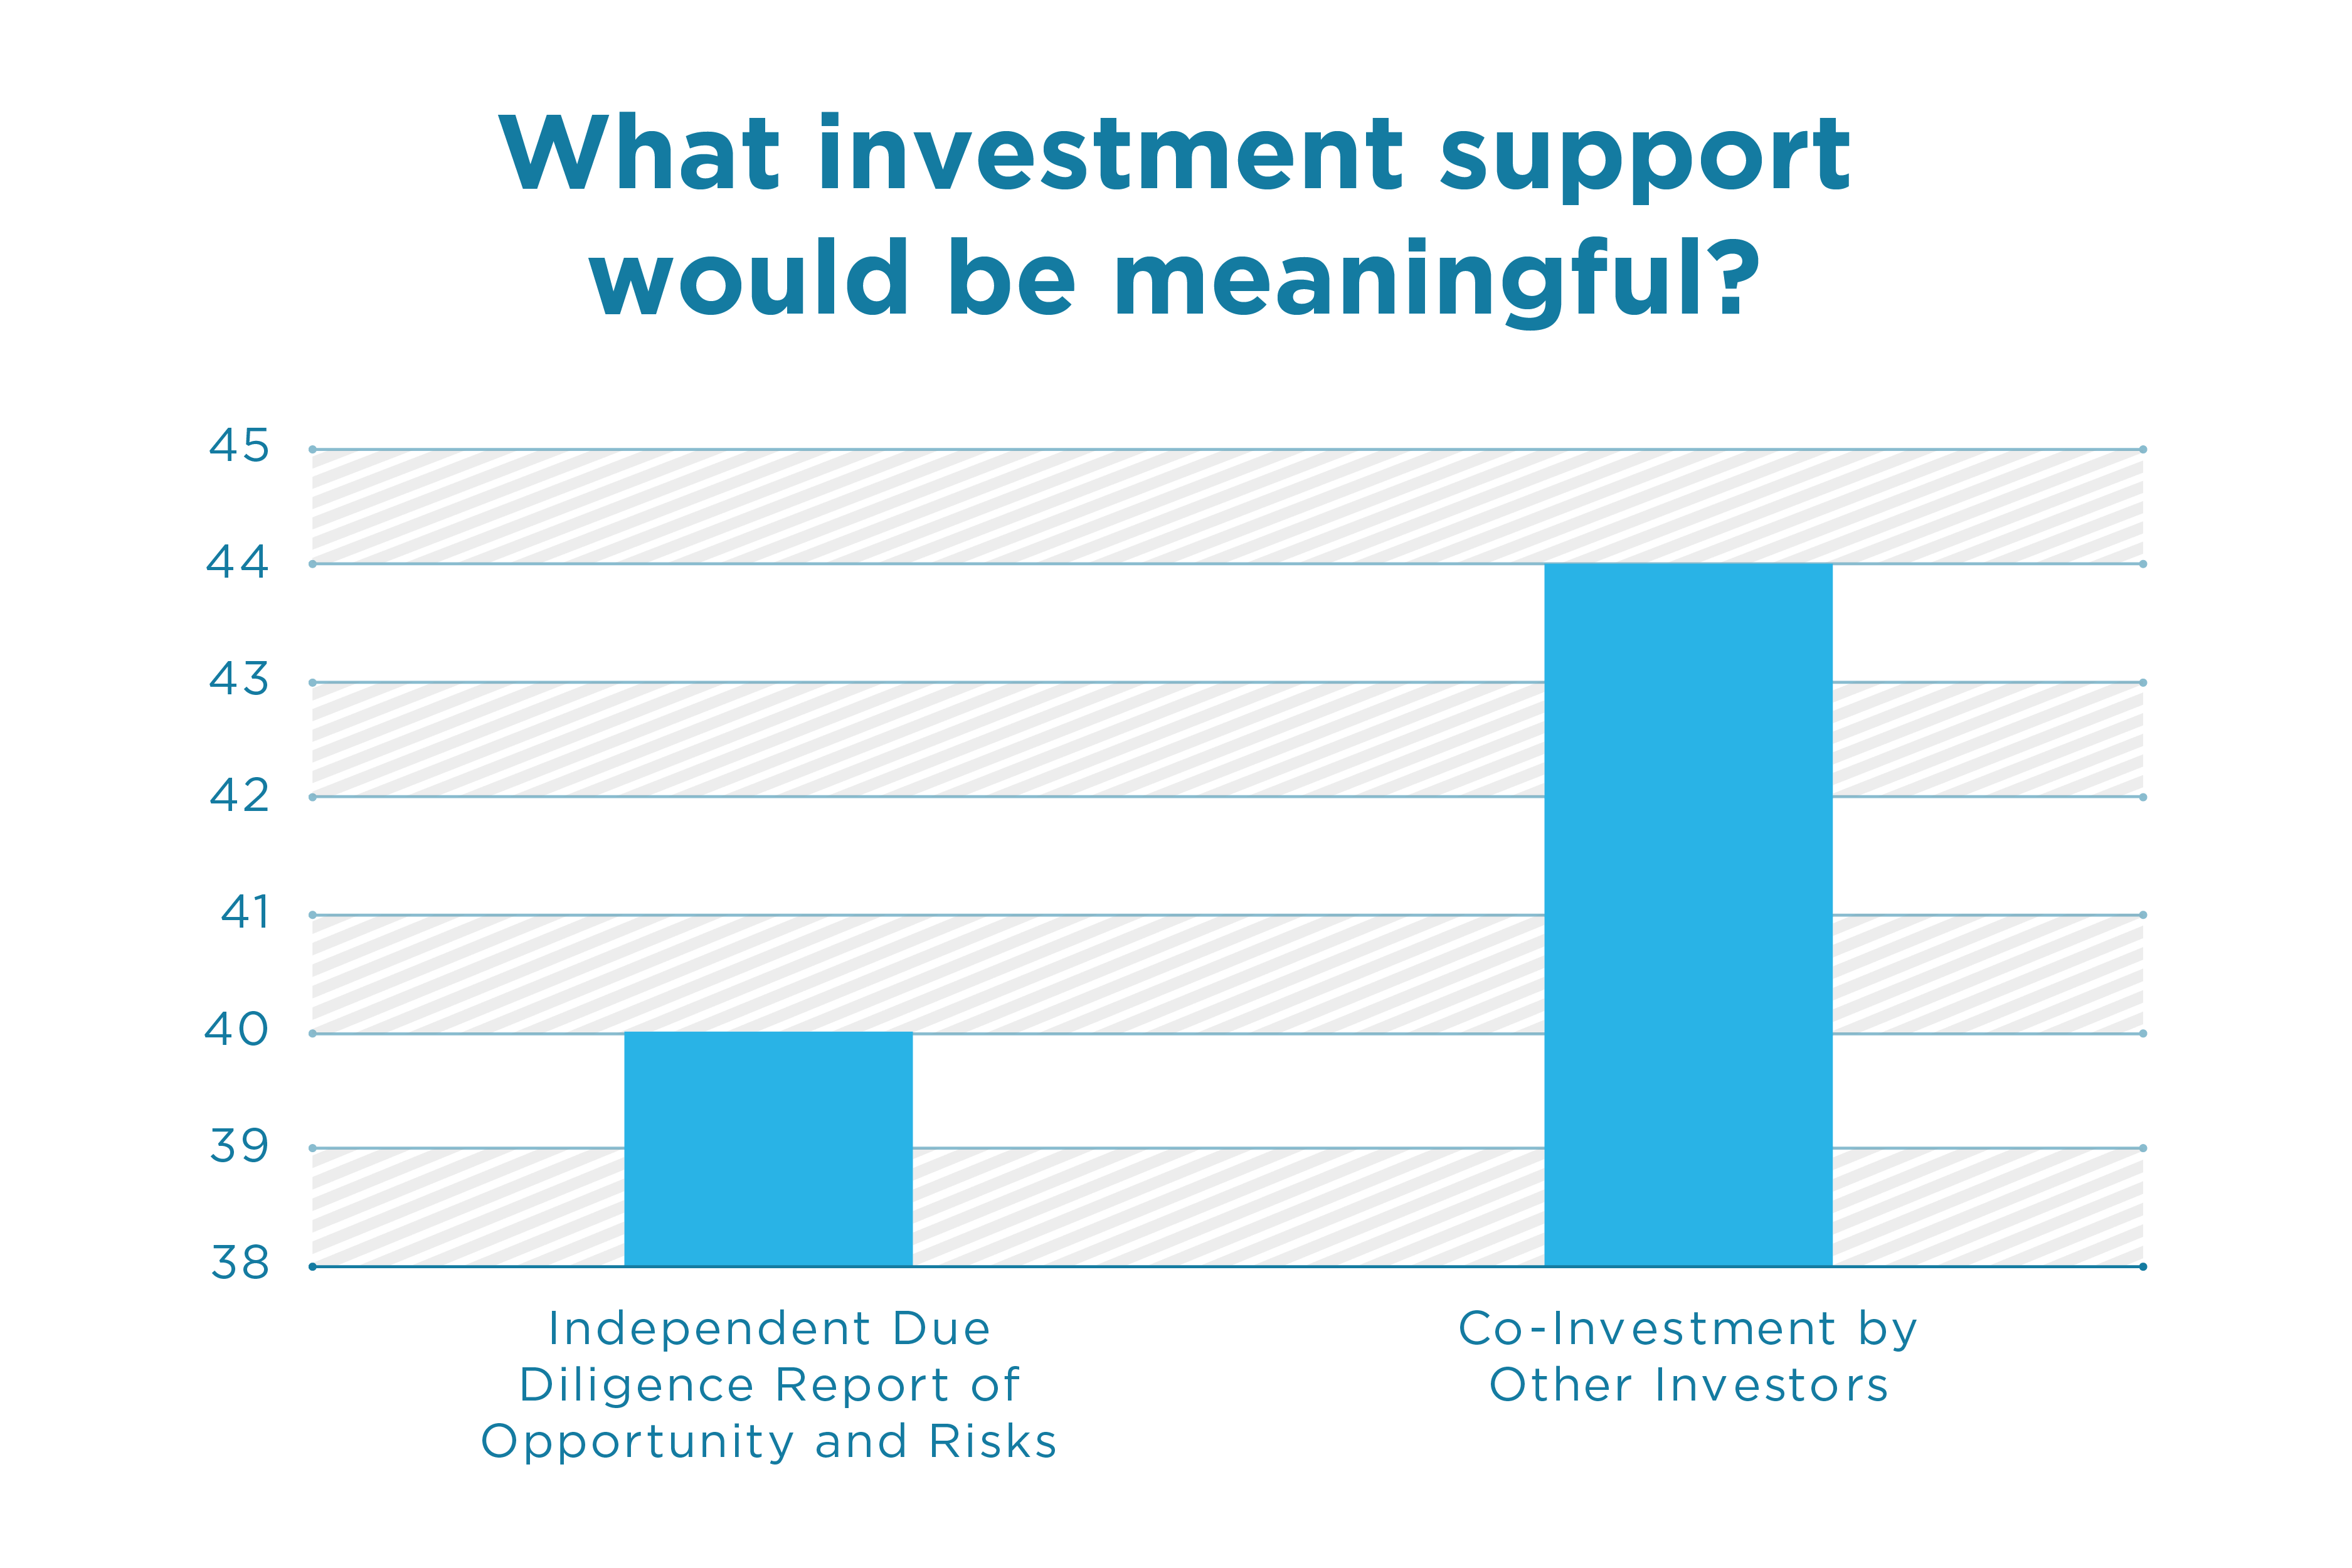 What-investment-support-would-be-meaningful